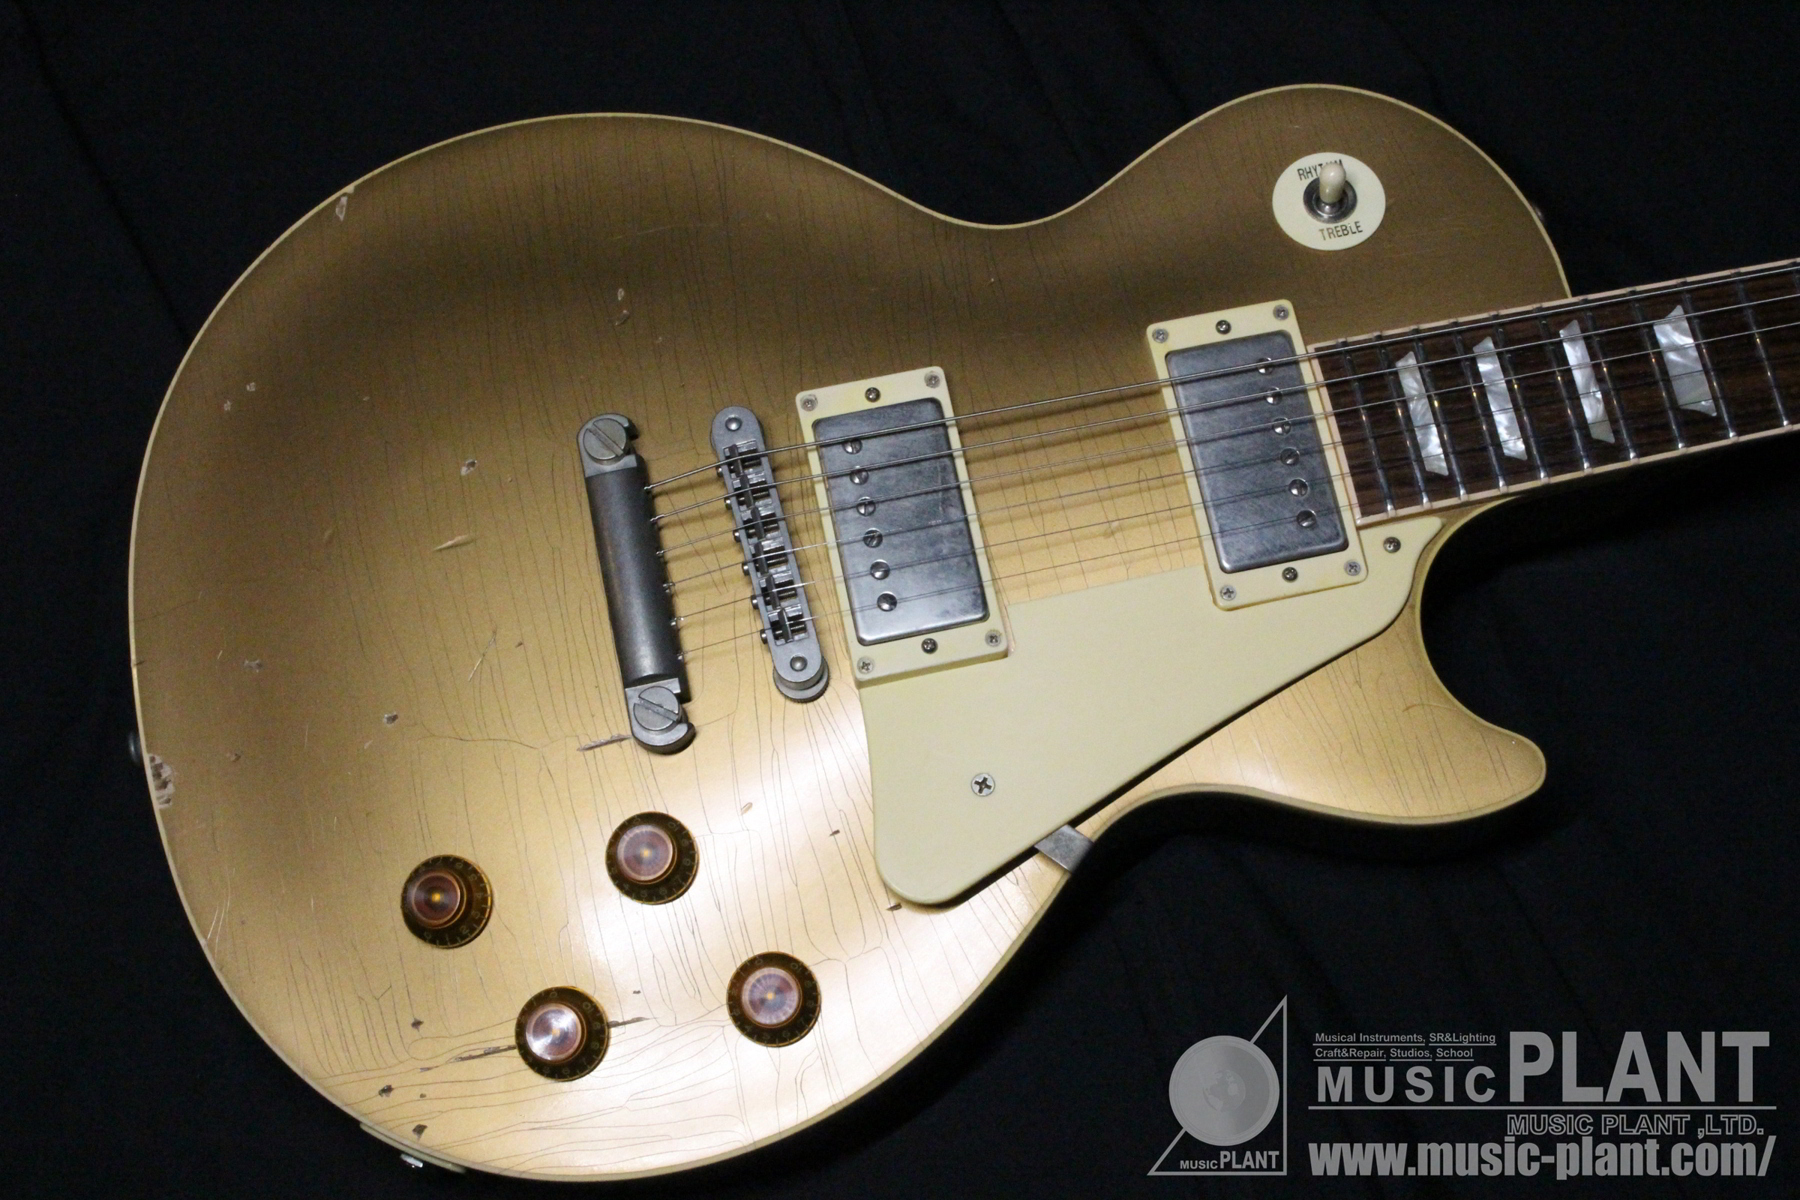 NGLP/Gold Top/Gibson Les Paul Conversion追加画像